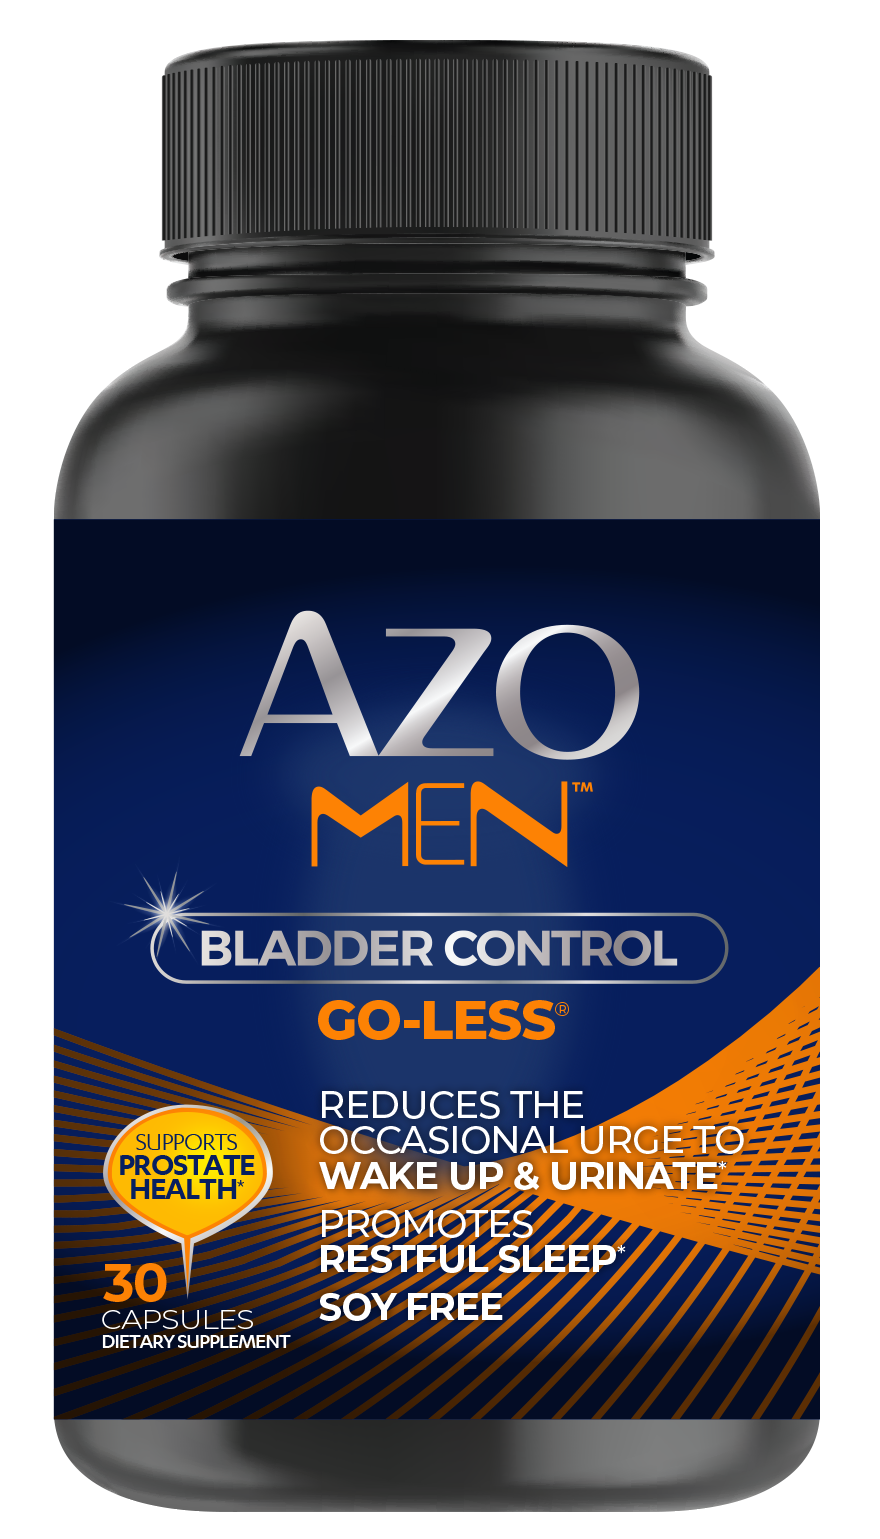 AZO MENTM Bladder Control with Go-Less® MEN front of Package